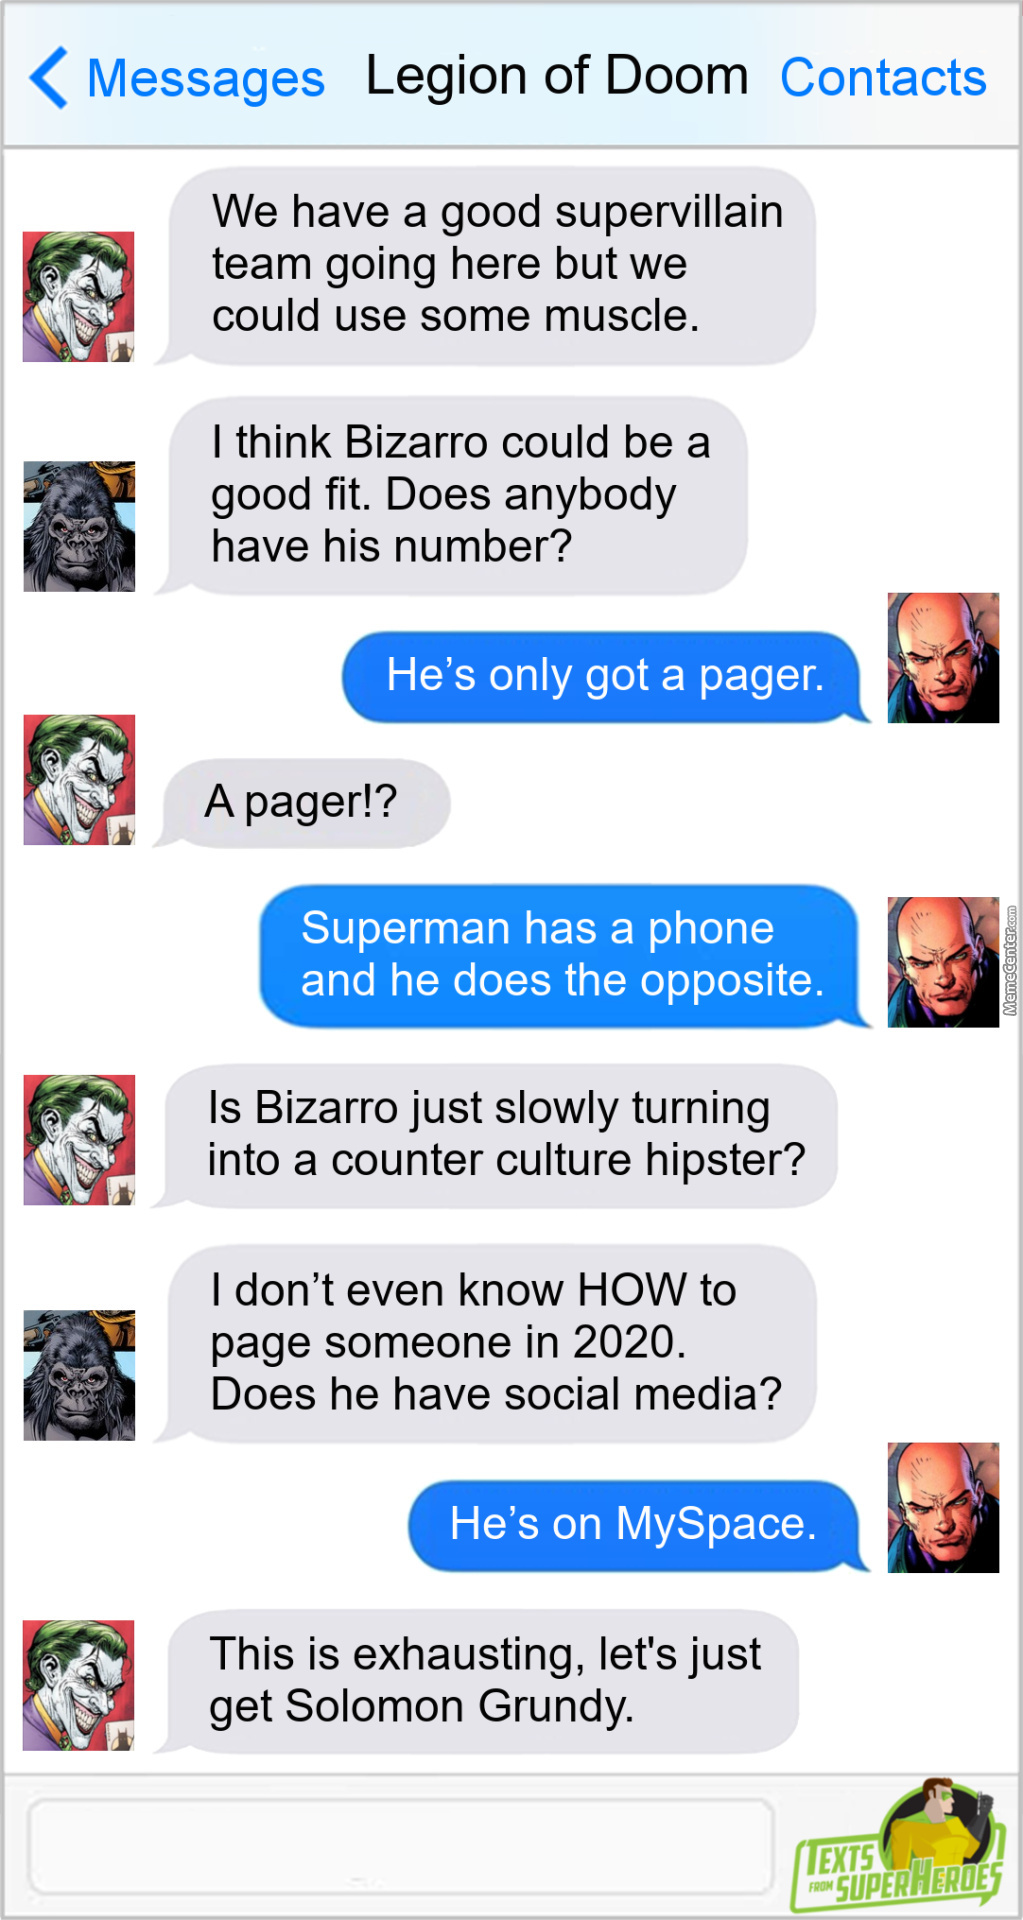 Hipster Bizarro - I'd Go See That Movie